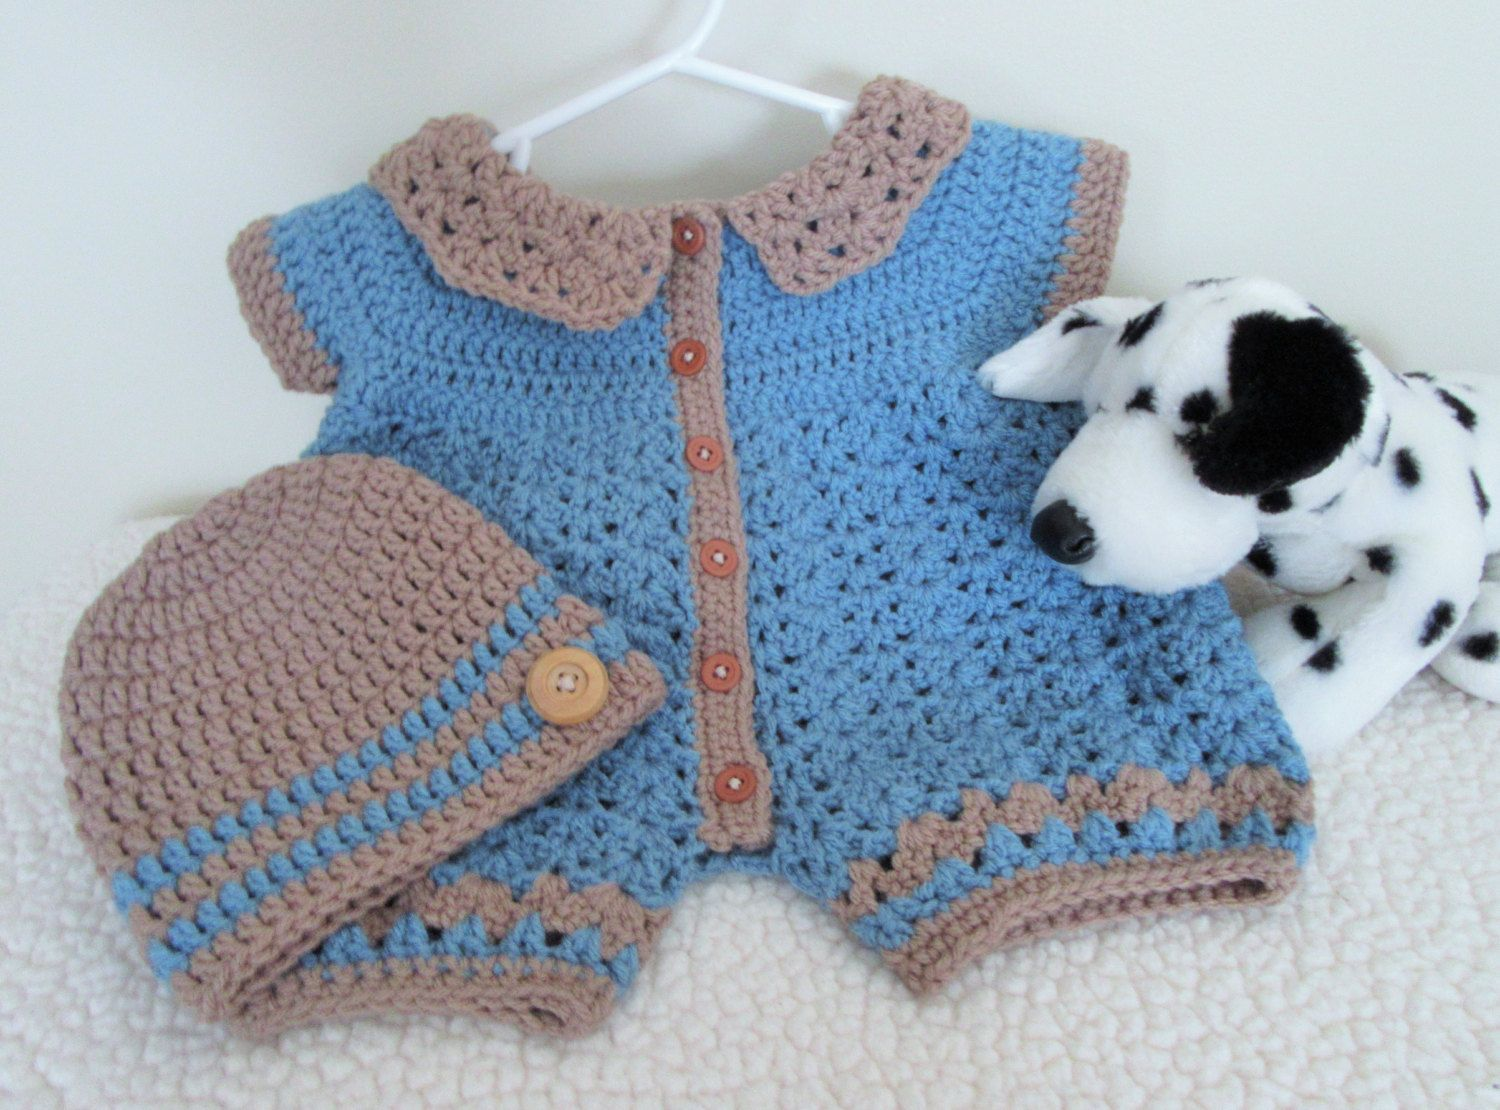 Crochet baby romper baby boy outfit infant onesie zoom dandy crochet baby romper baby boy outfit infant onesie zoom bankloansurffo Choice Image